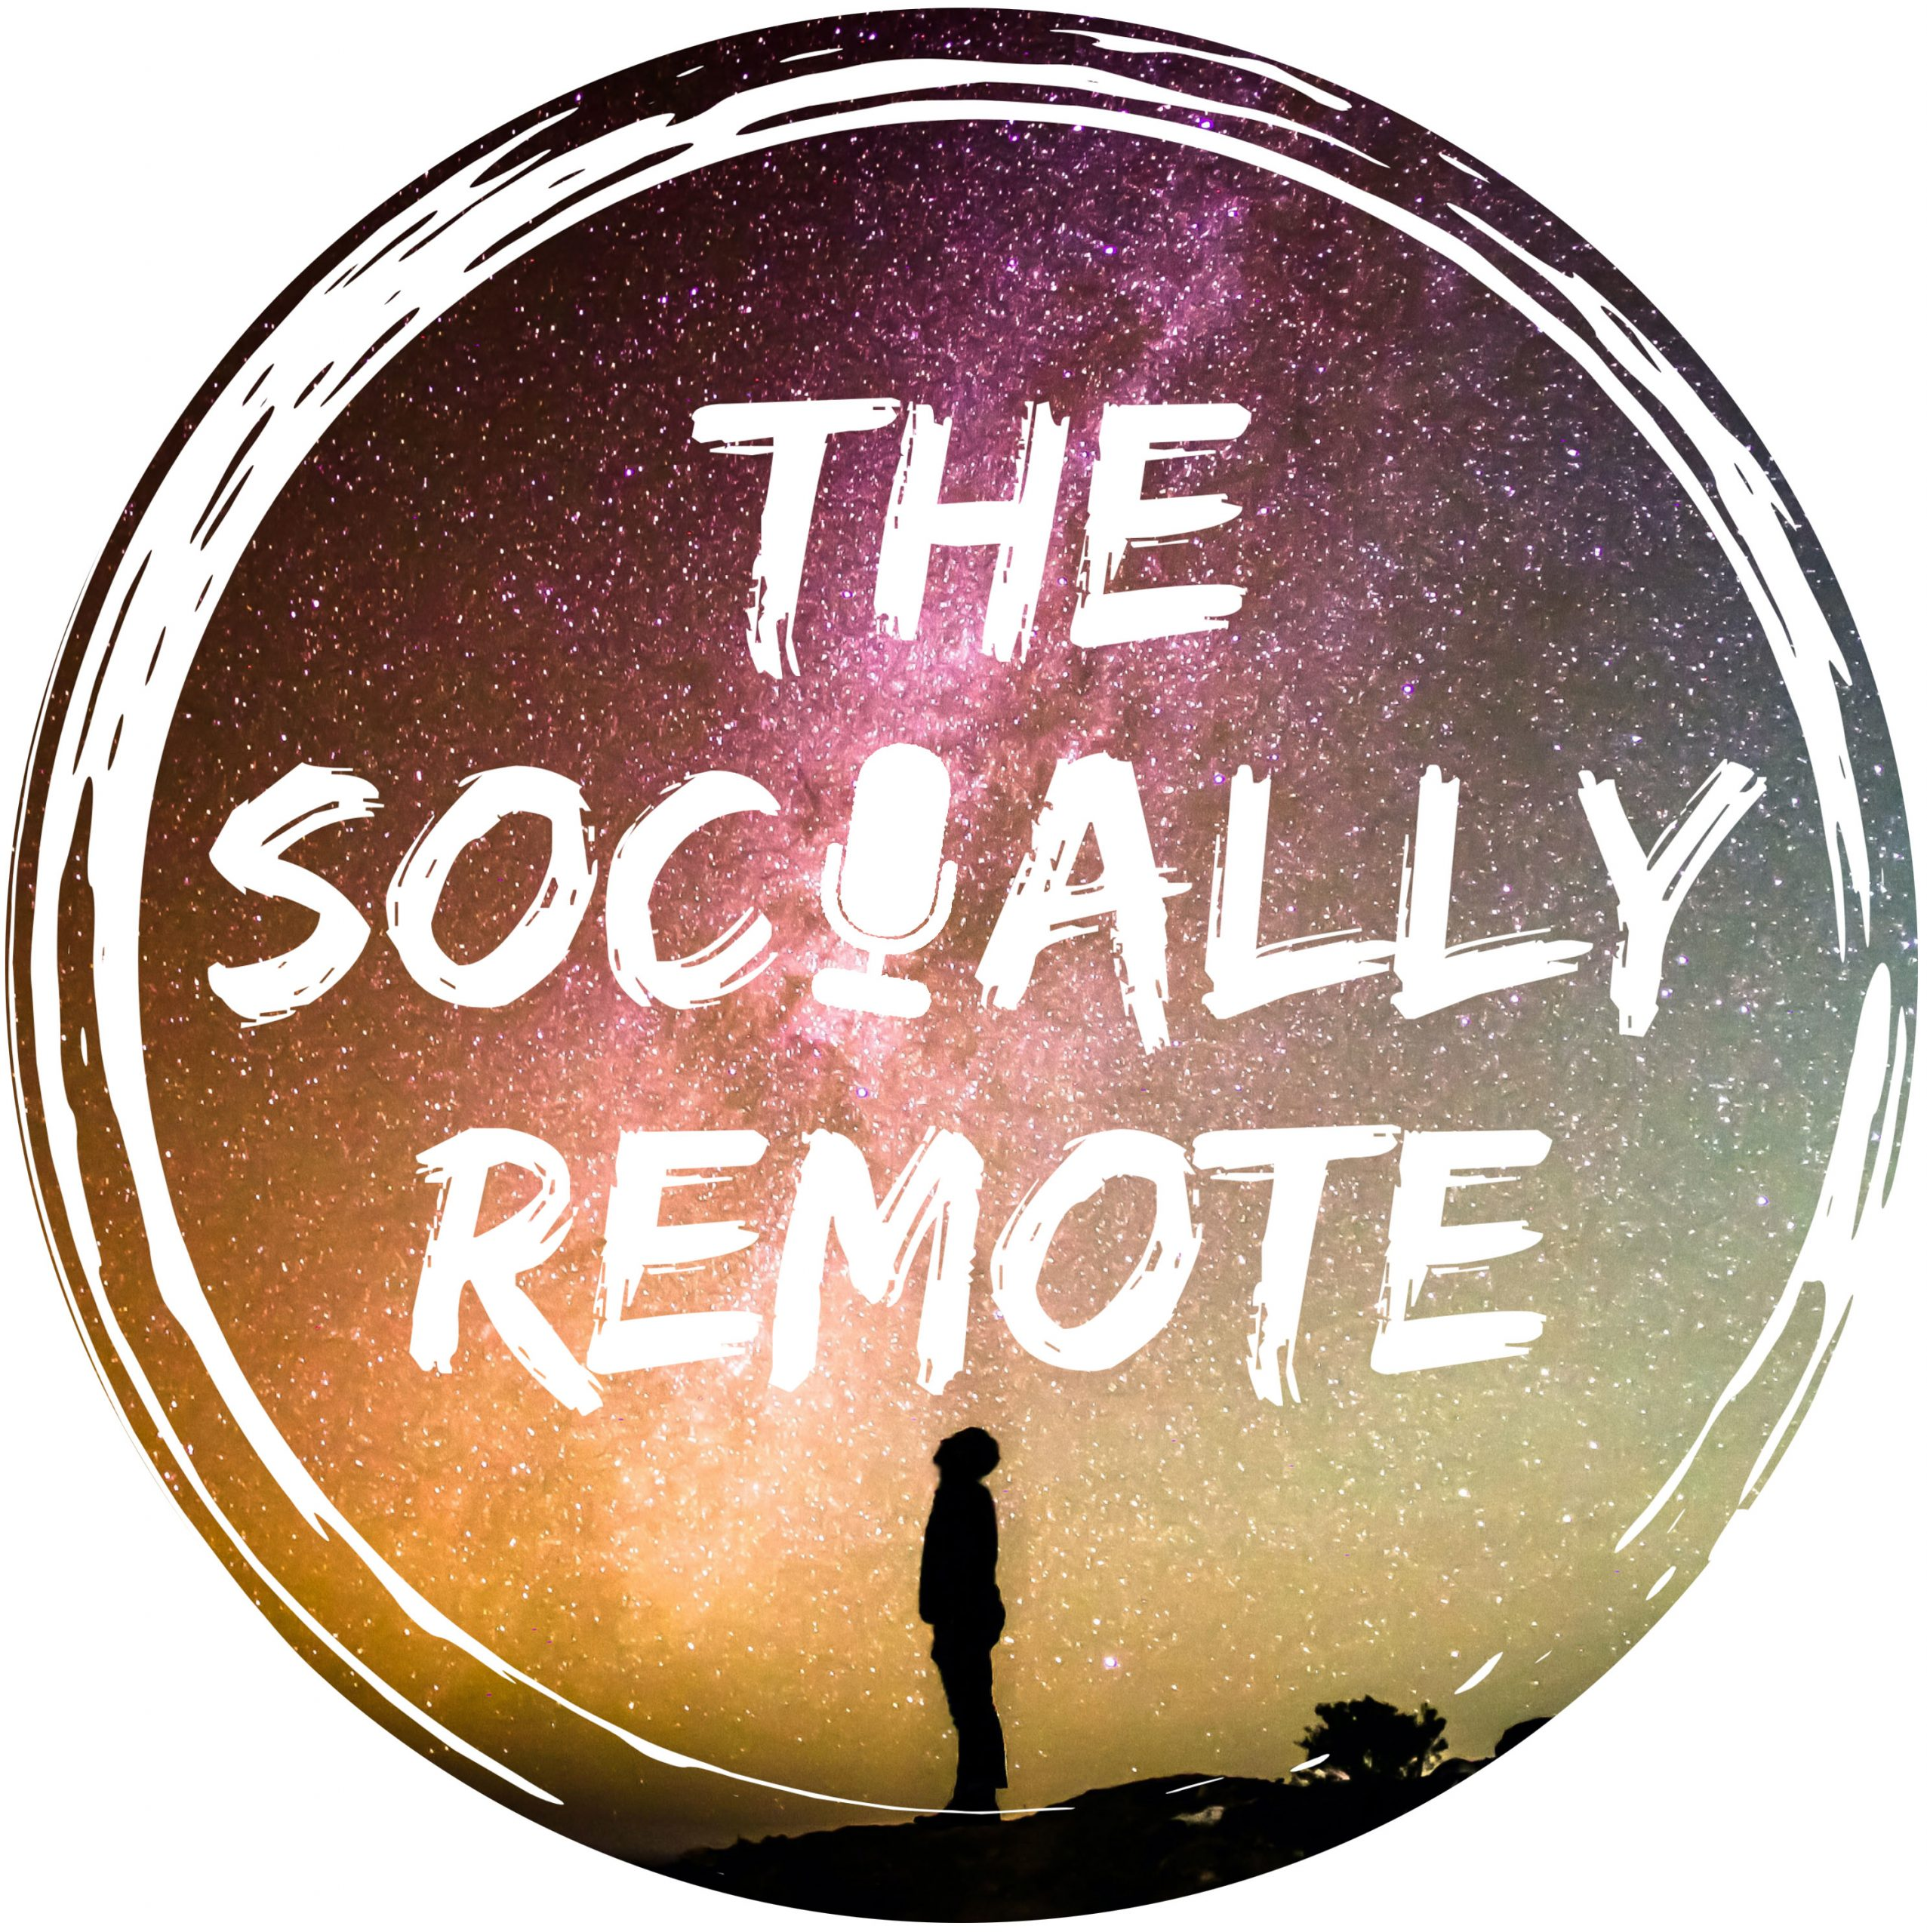 Podcast: Episode 6: Discipleship – The Socially Remote